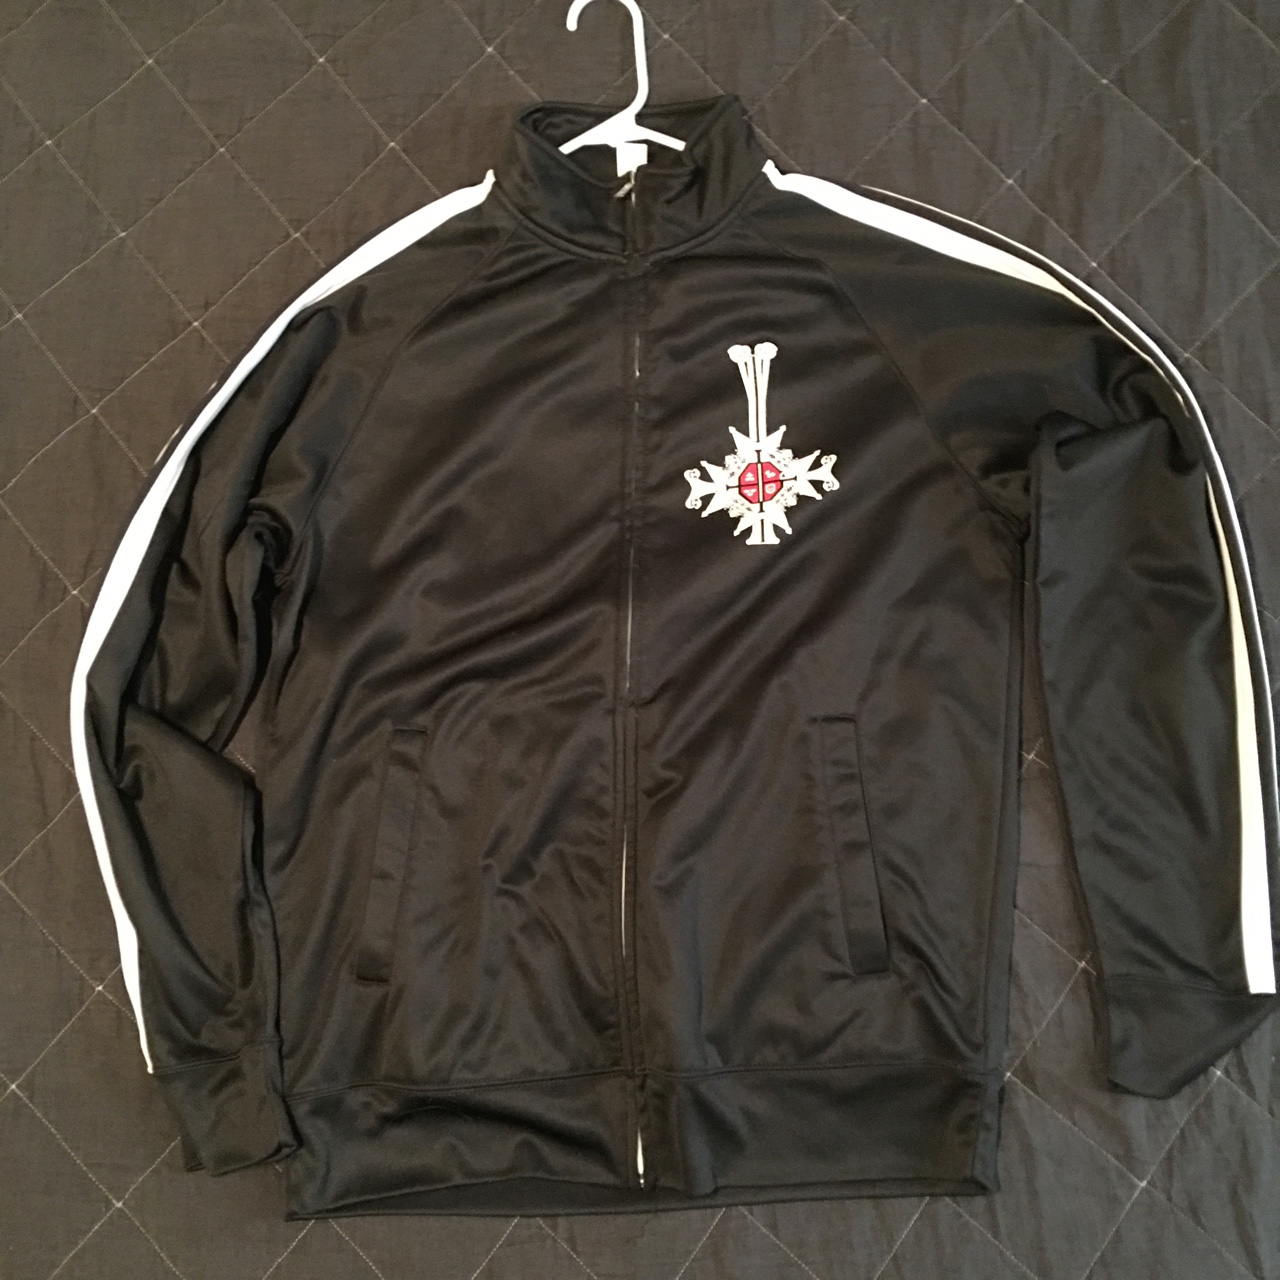 Official GHOST band track jacket--make me an offer!